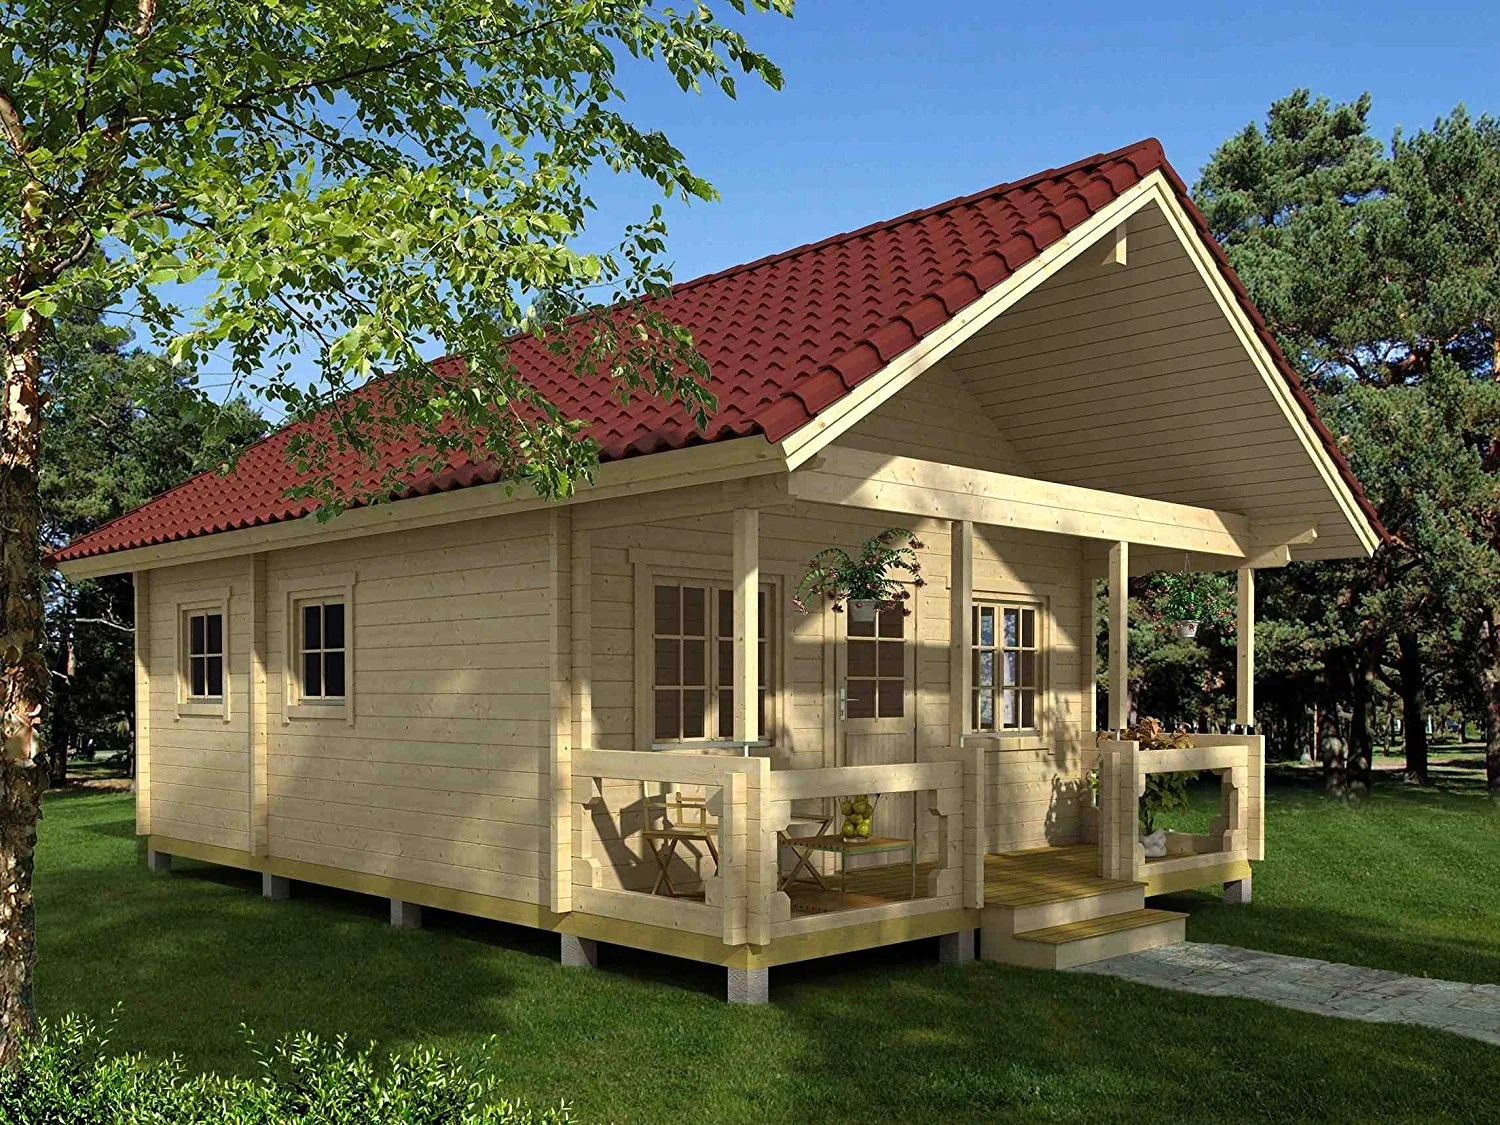 Shipping Container Barn Kit